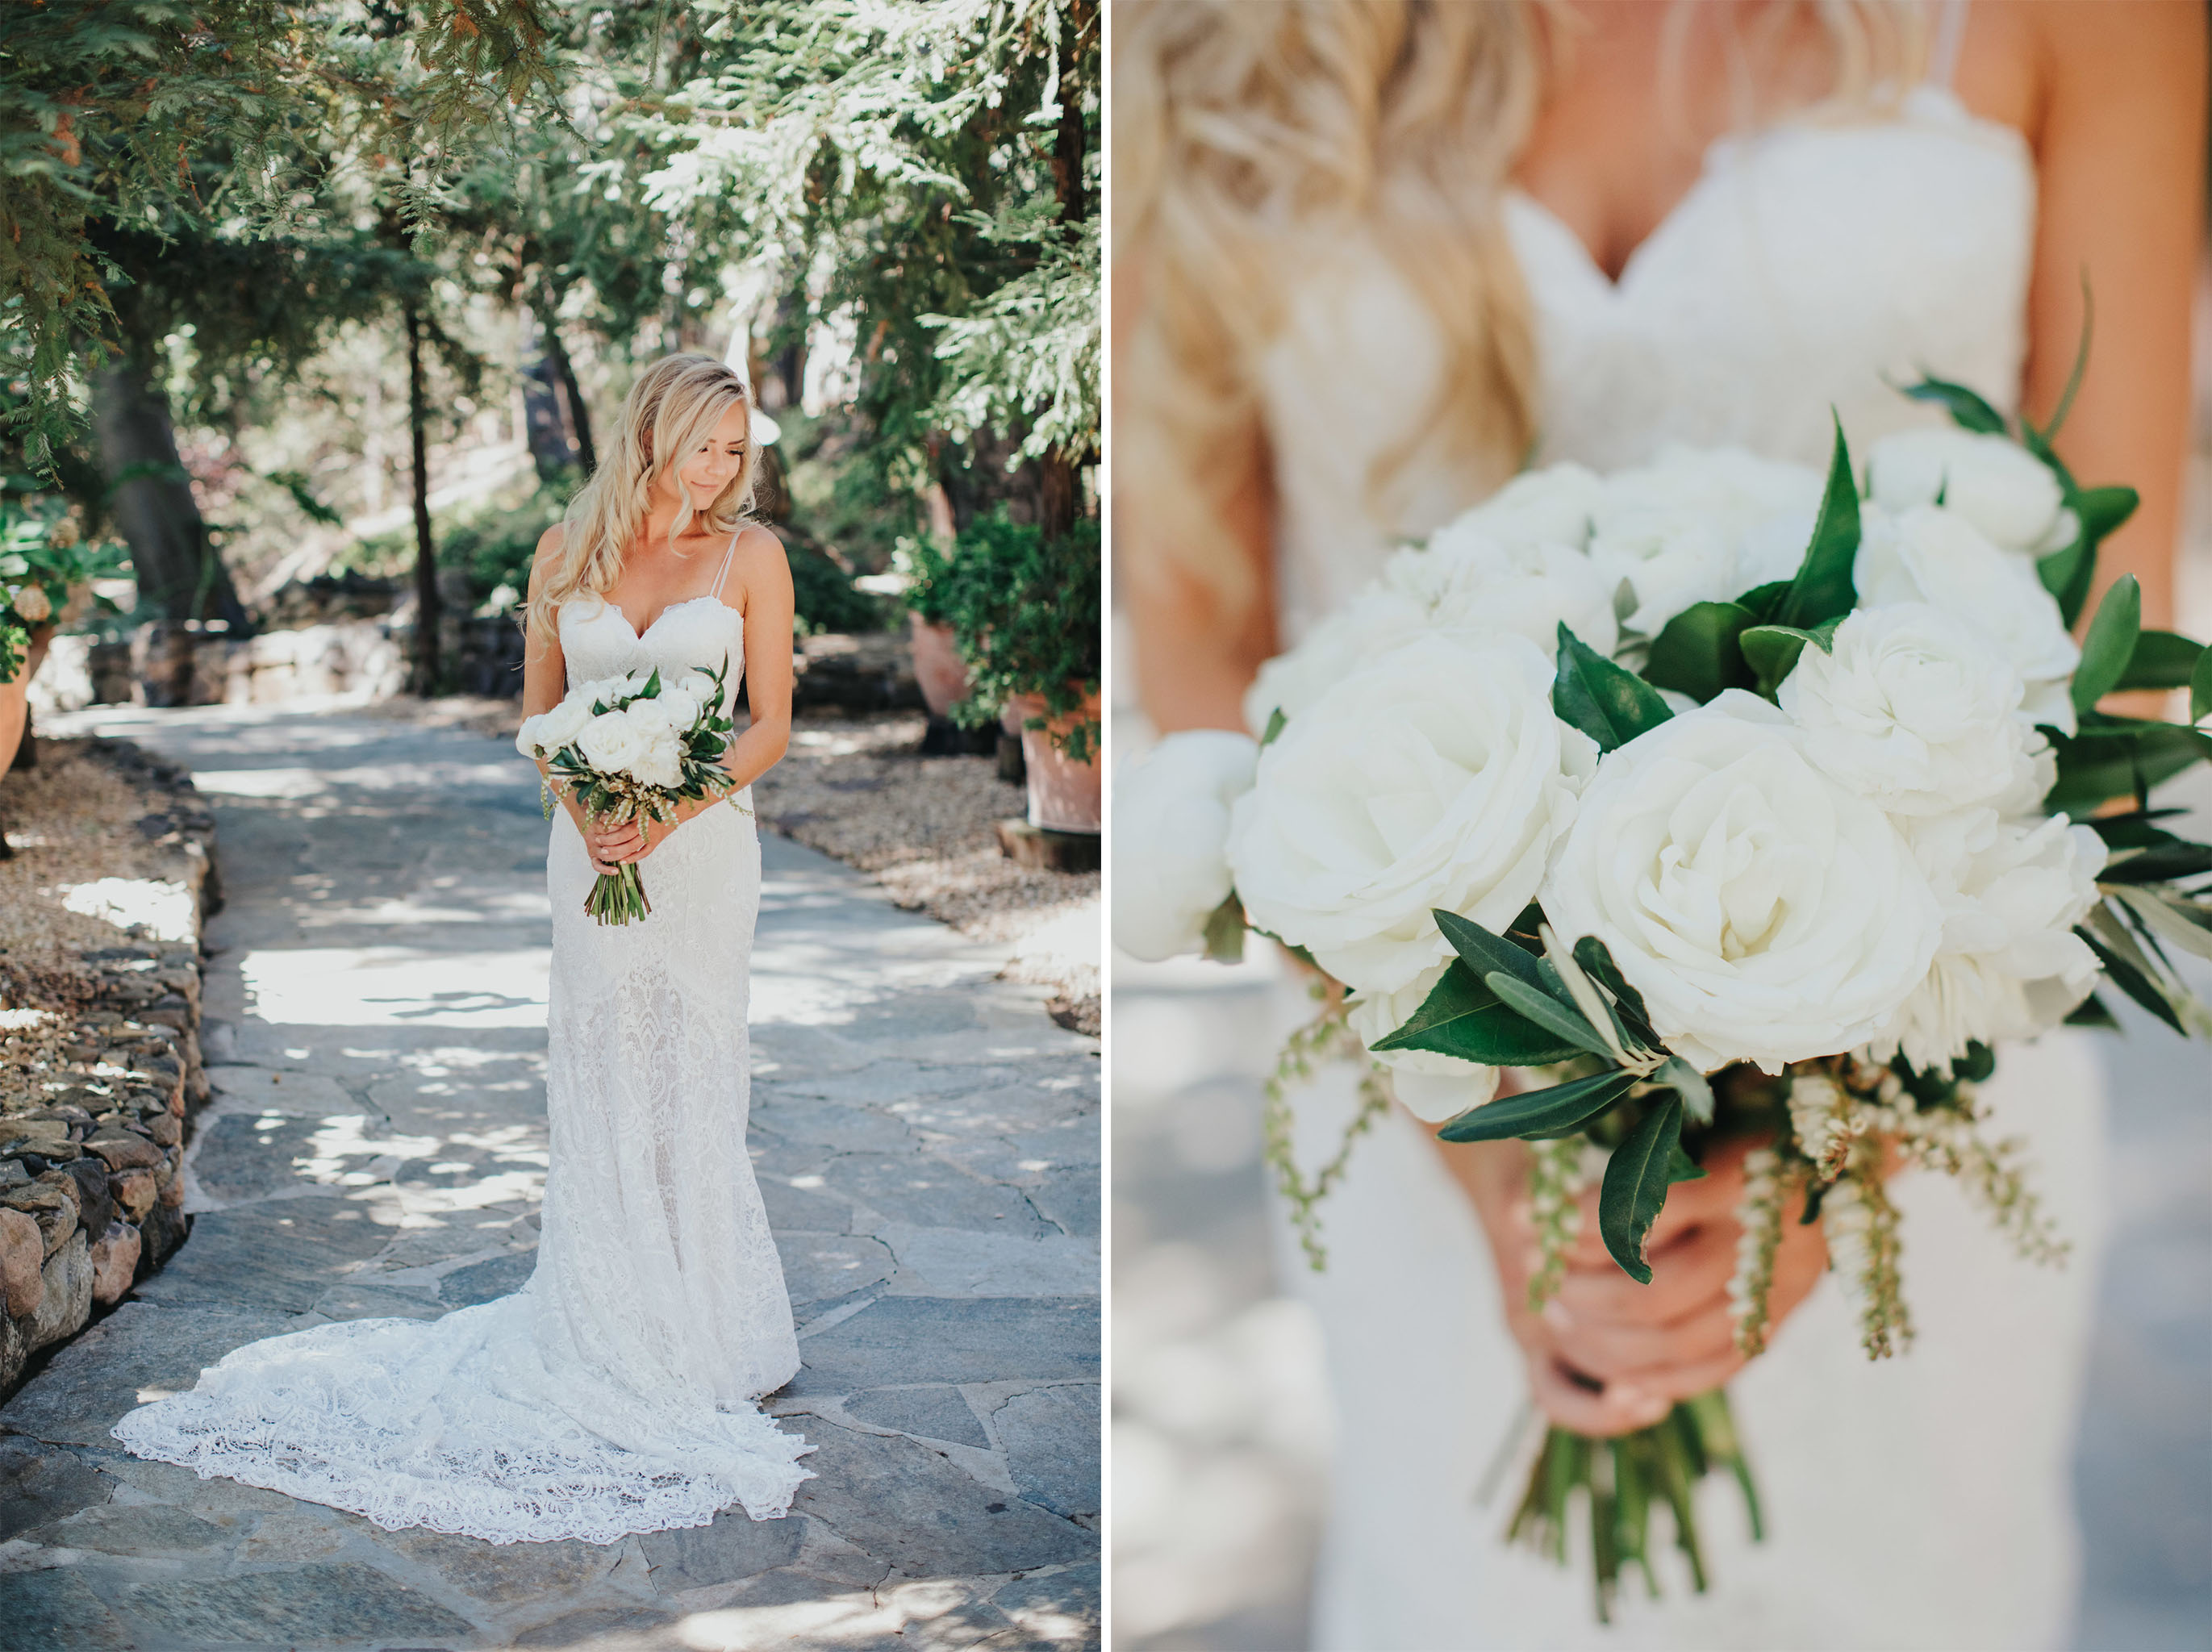 Bride | Calamigos Ranch